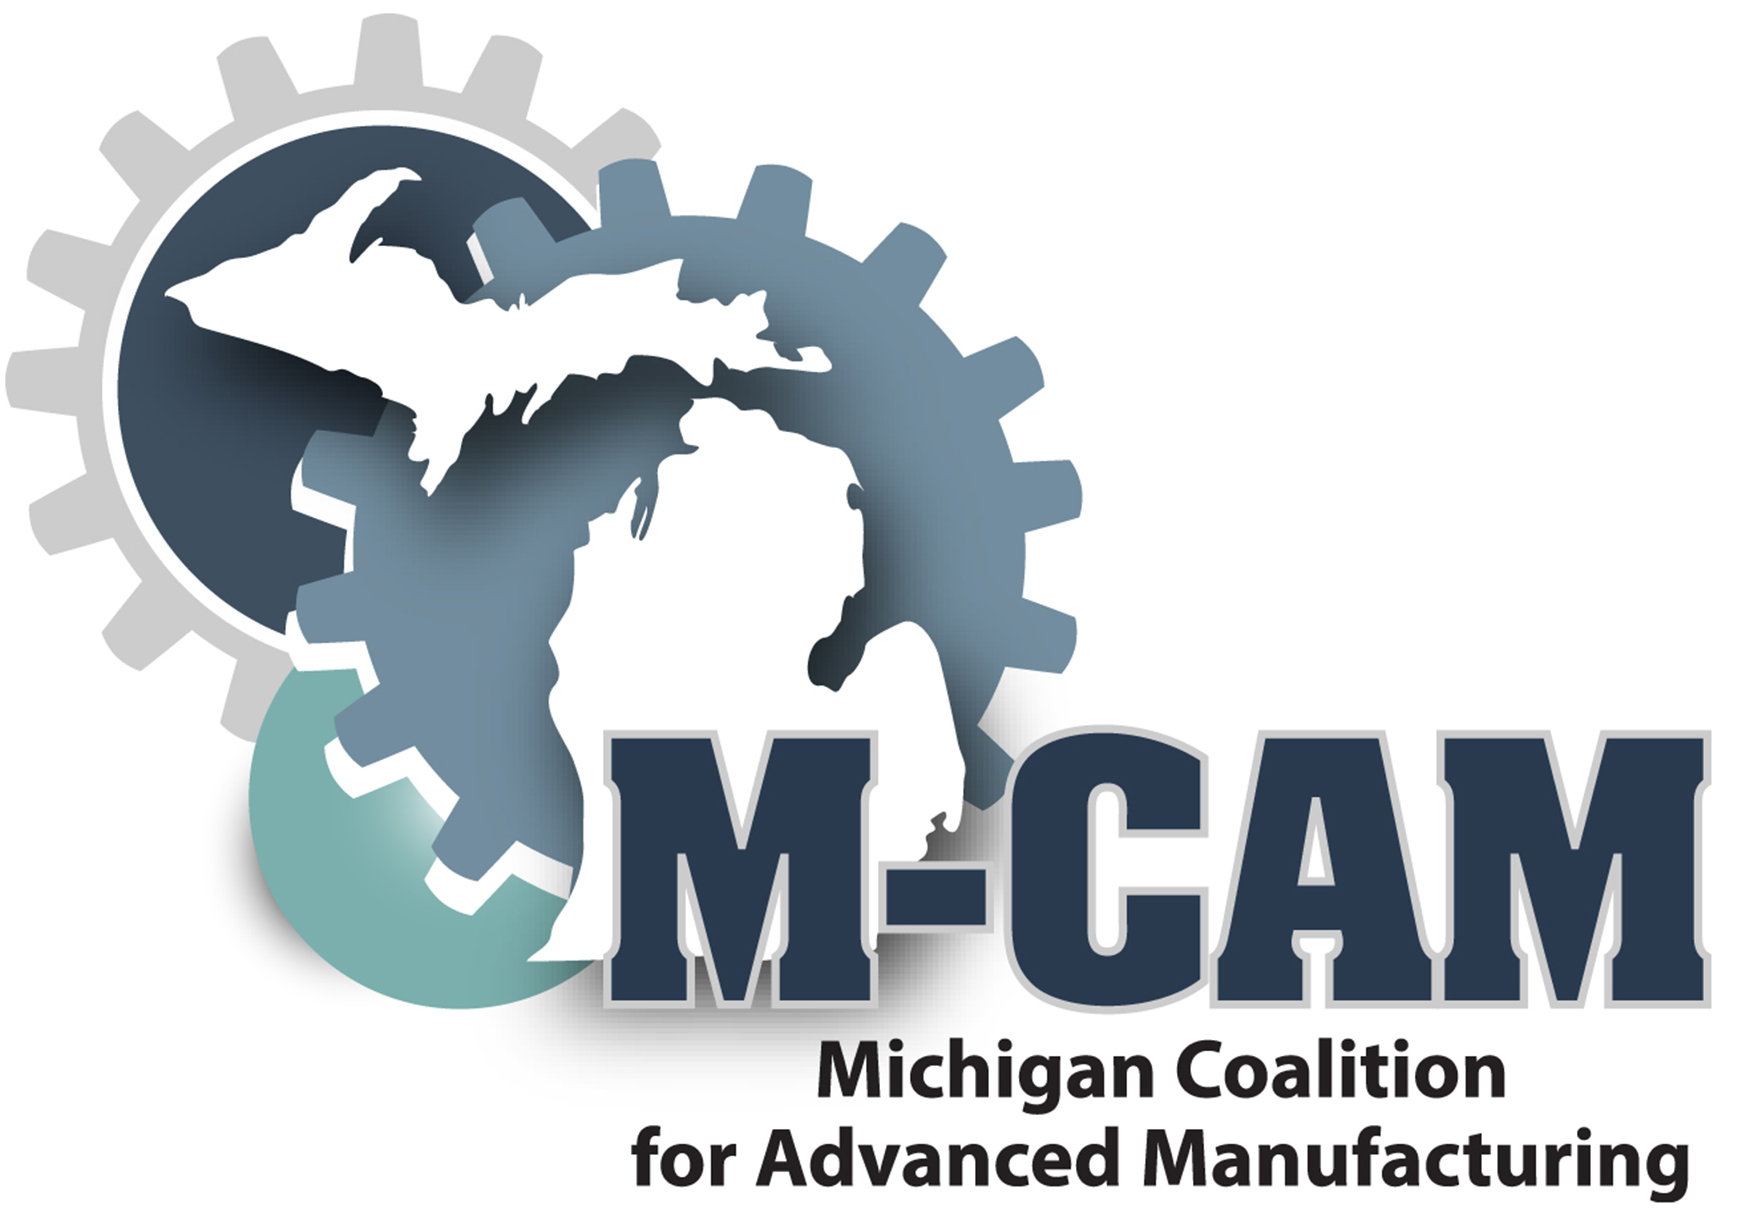 Michigan Coalition for Advanced Manufacturing